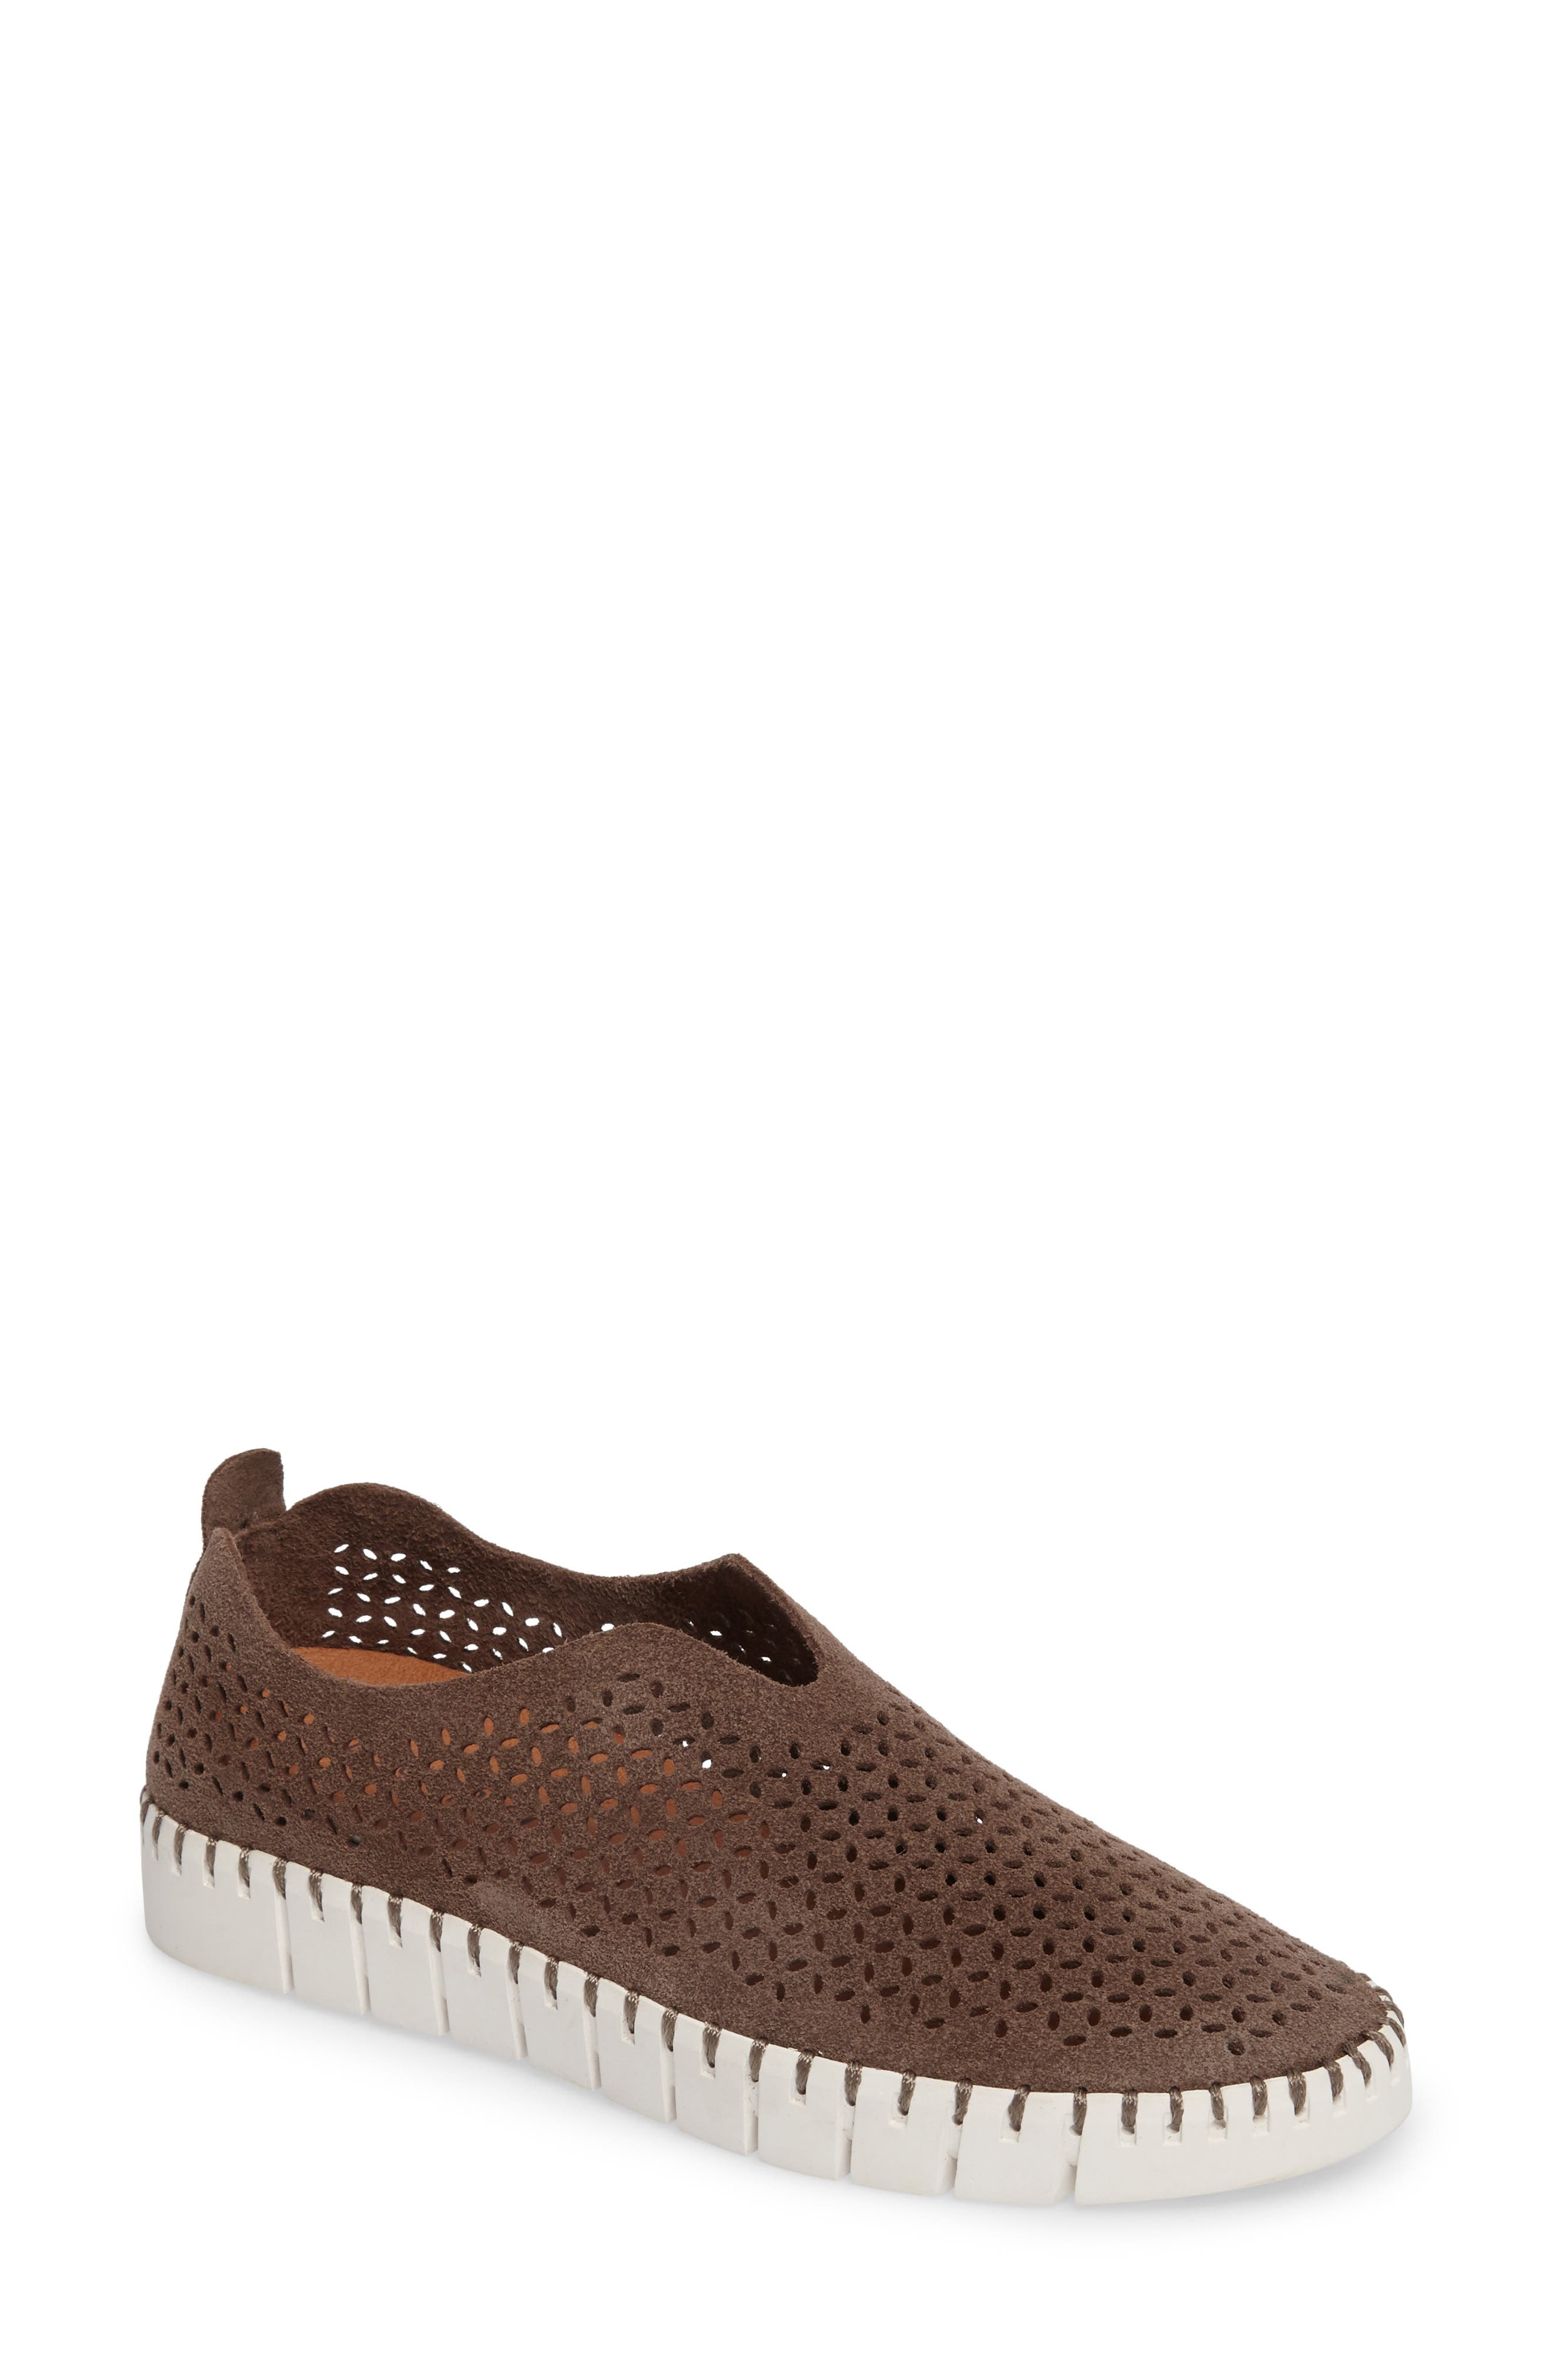 Alternate Image 1 Selected - Jeffrey Campbell Tiles Perforated Slip-On Sneaker (Women)